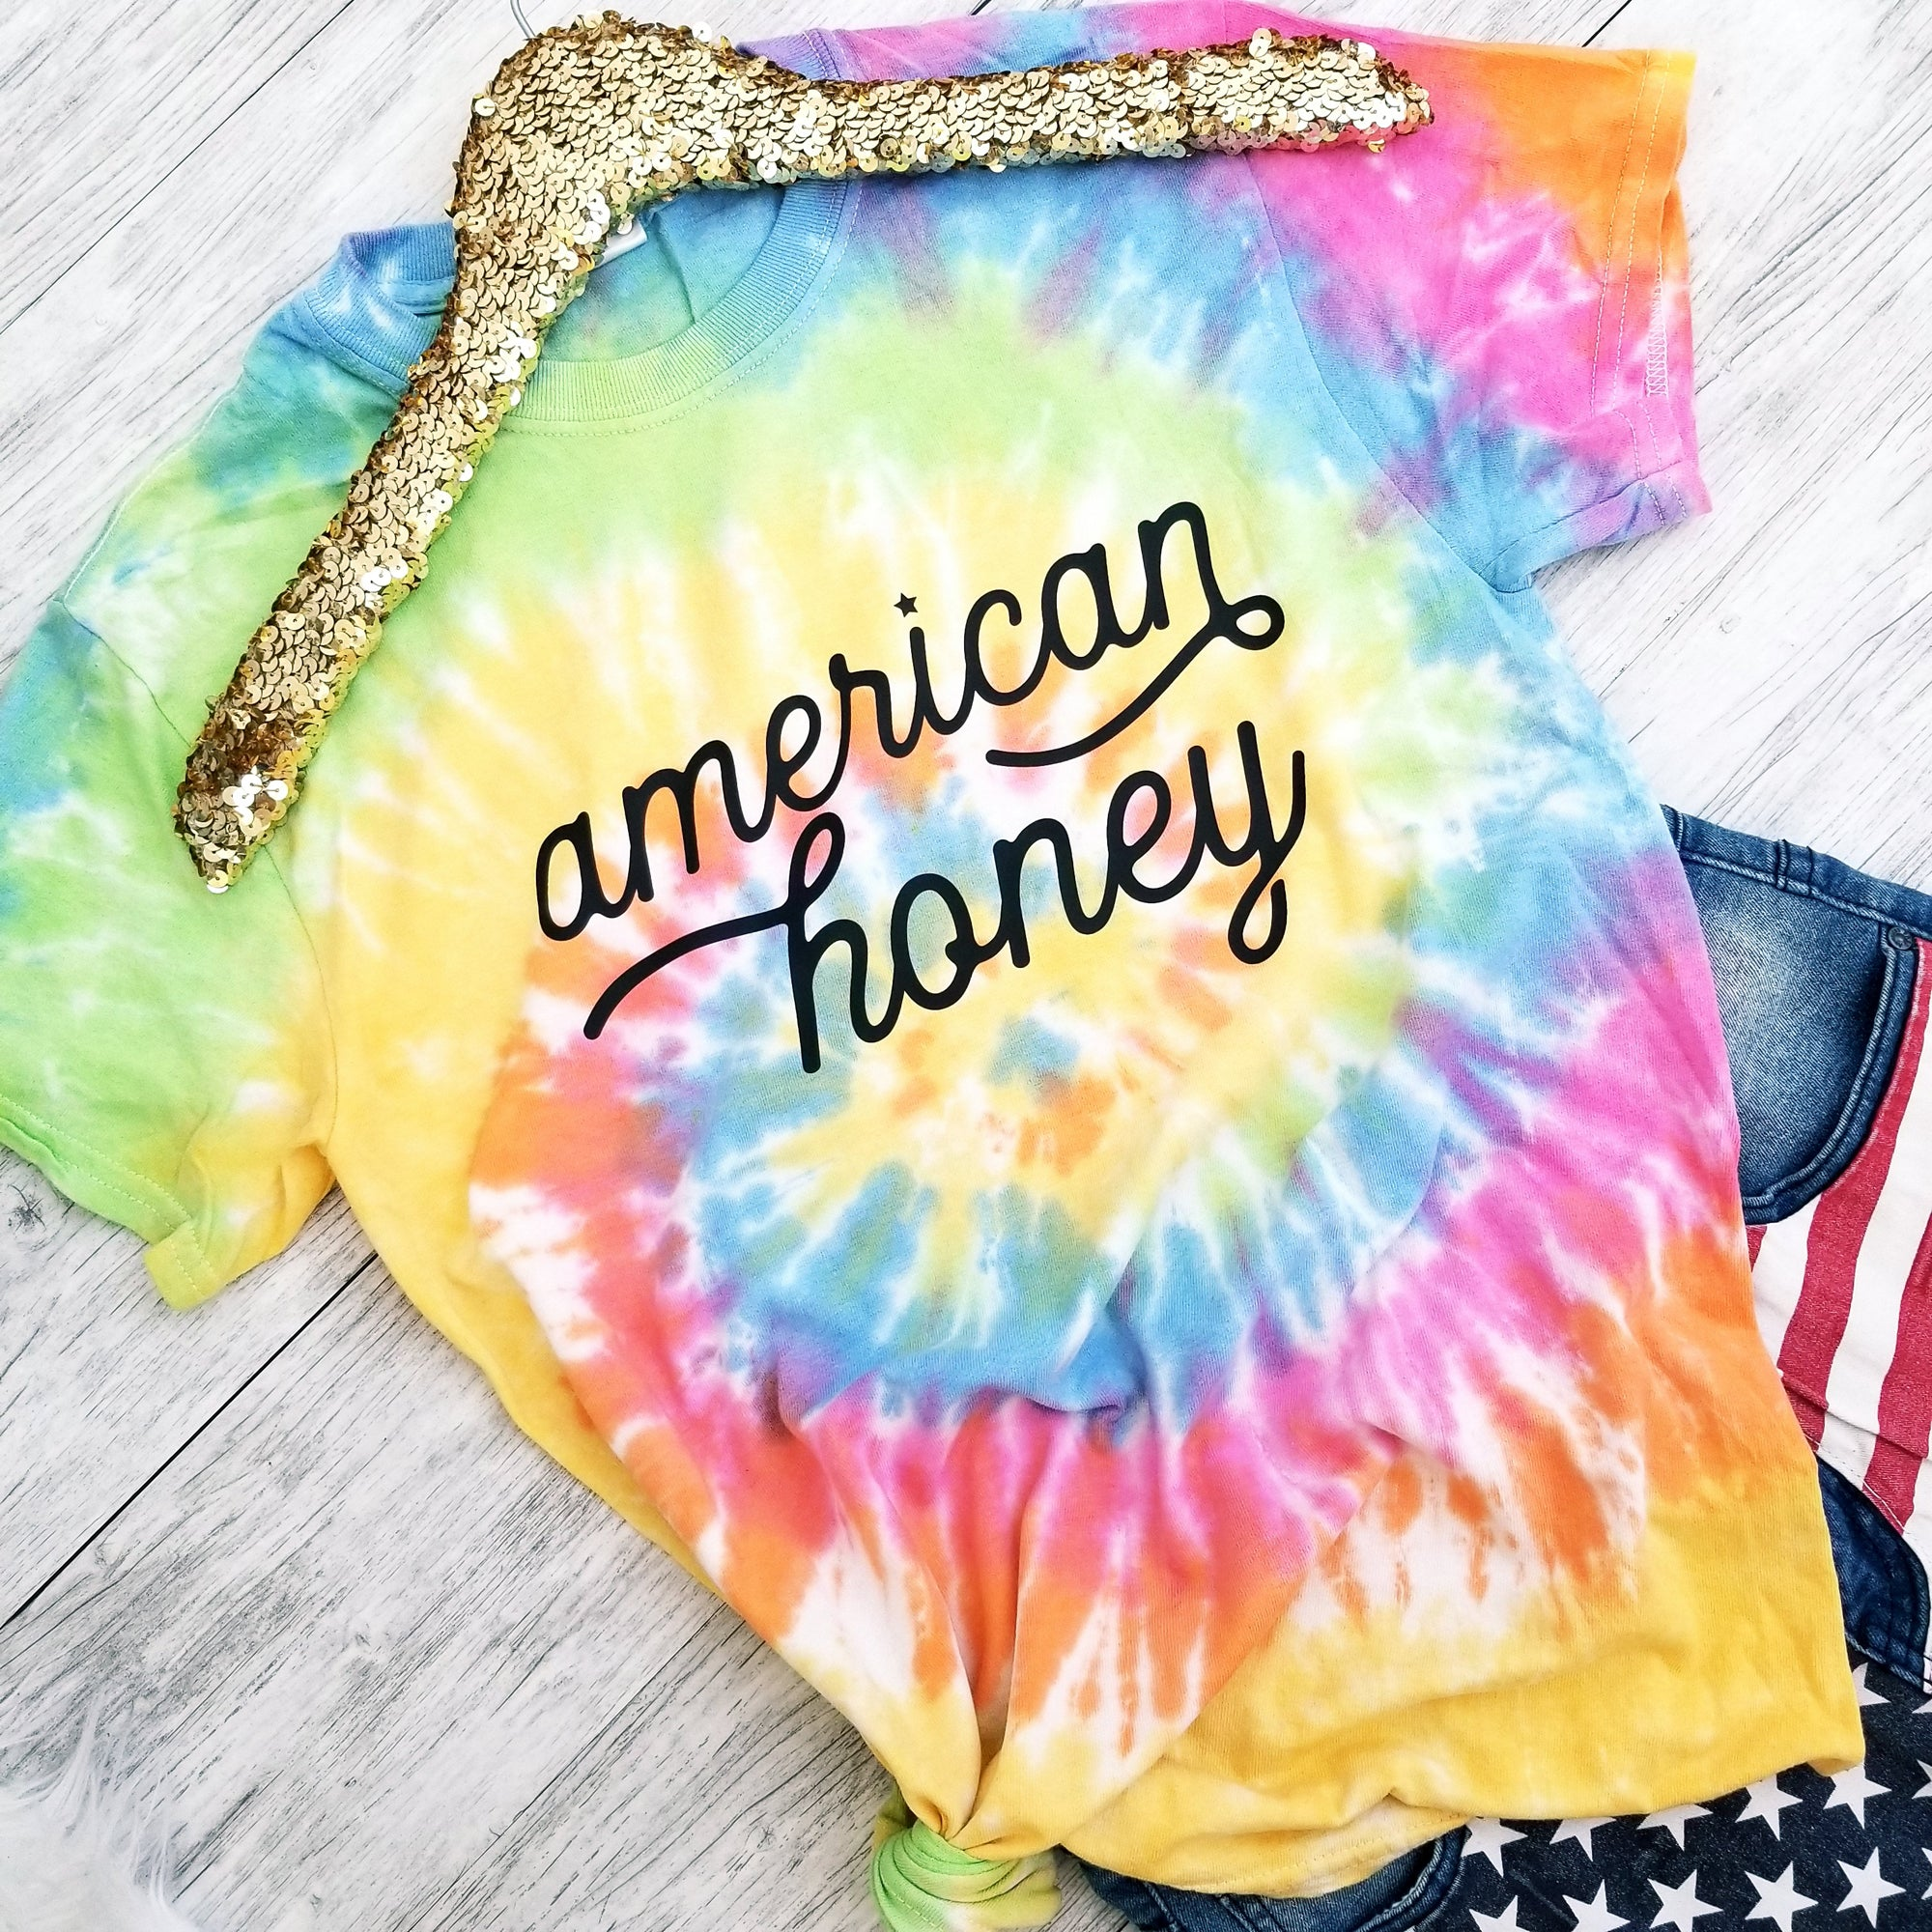 NEW Fourth of July. American Honey Tie Dye. Nature. Local Honey. Patriotic. 4th of July. USA. American. America. Country Fireworks. Tie Dye